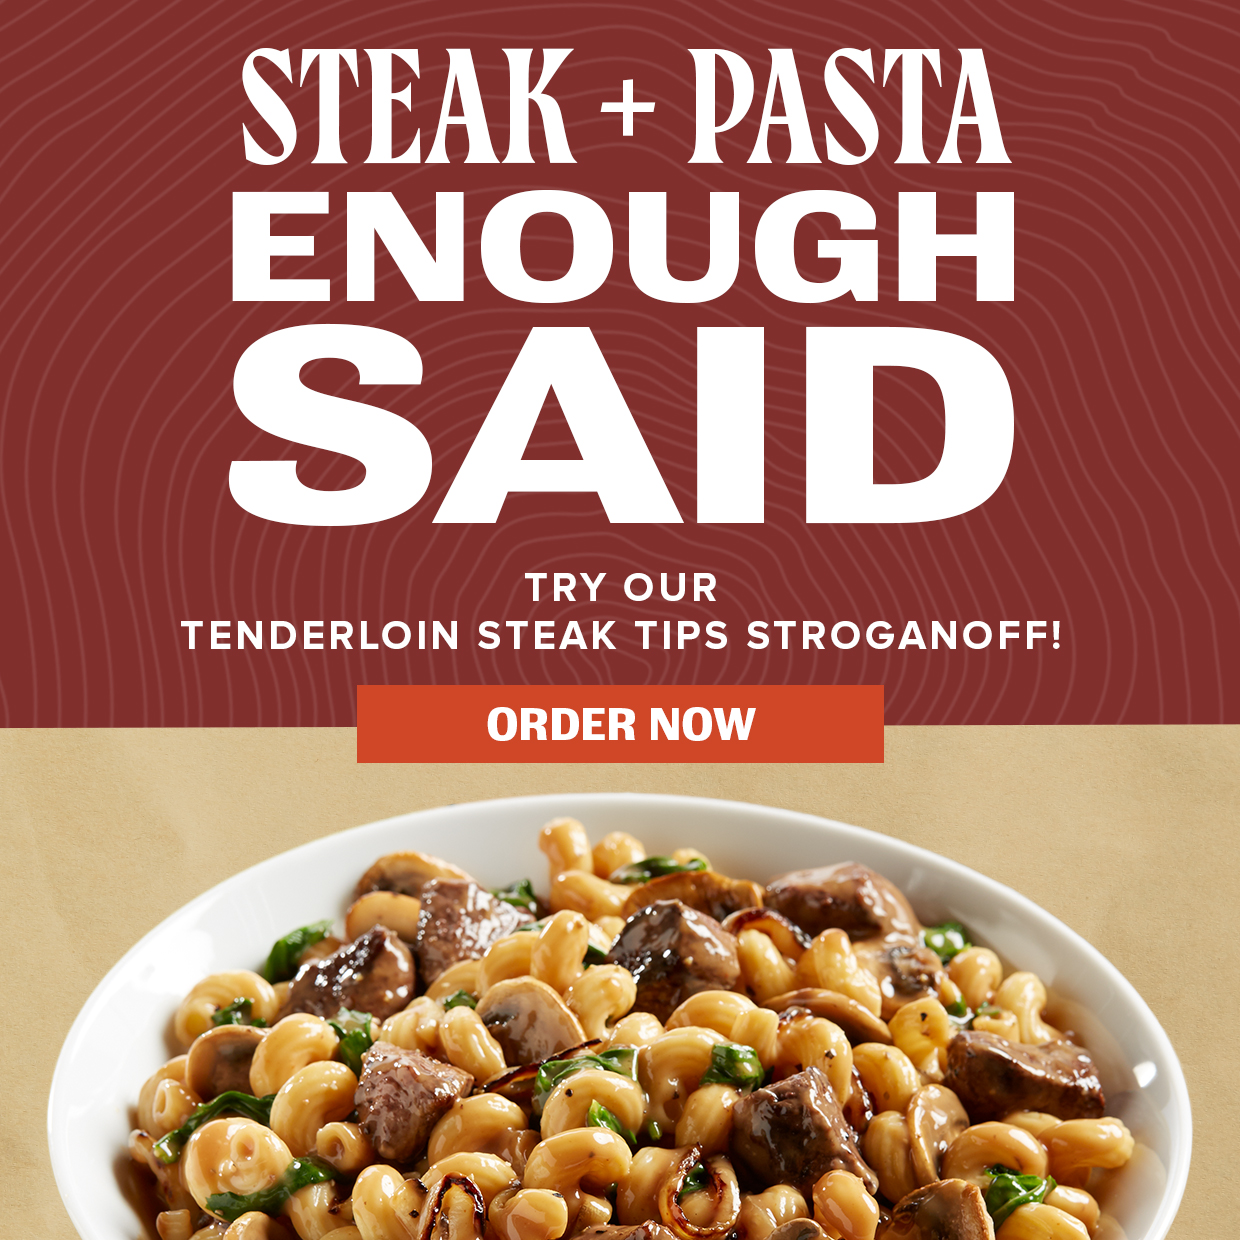 Steak + Pasta. Enough Said. Try our Tenderloin Steak Tips Stroganoff! Order Now